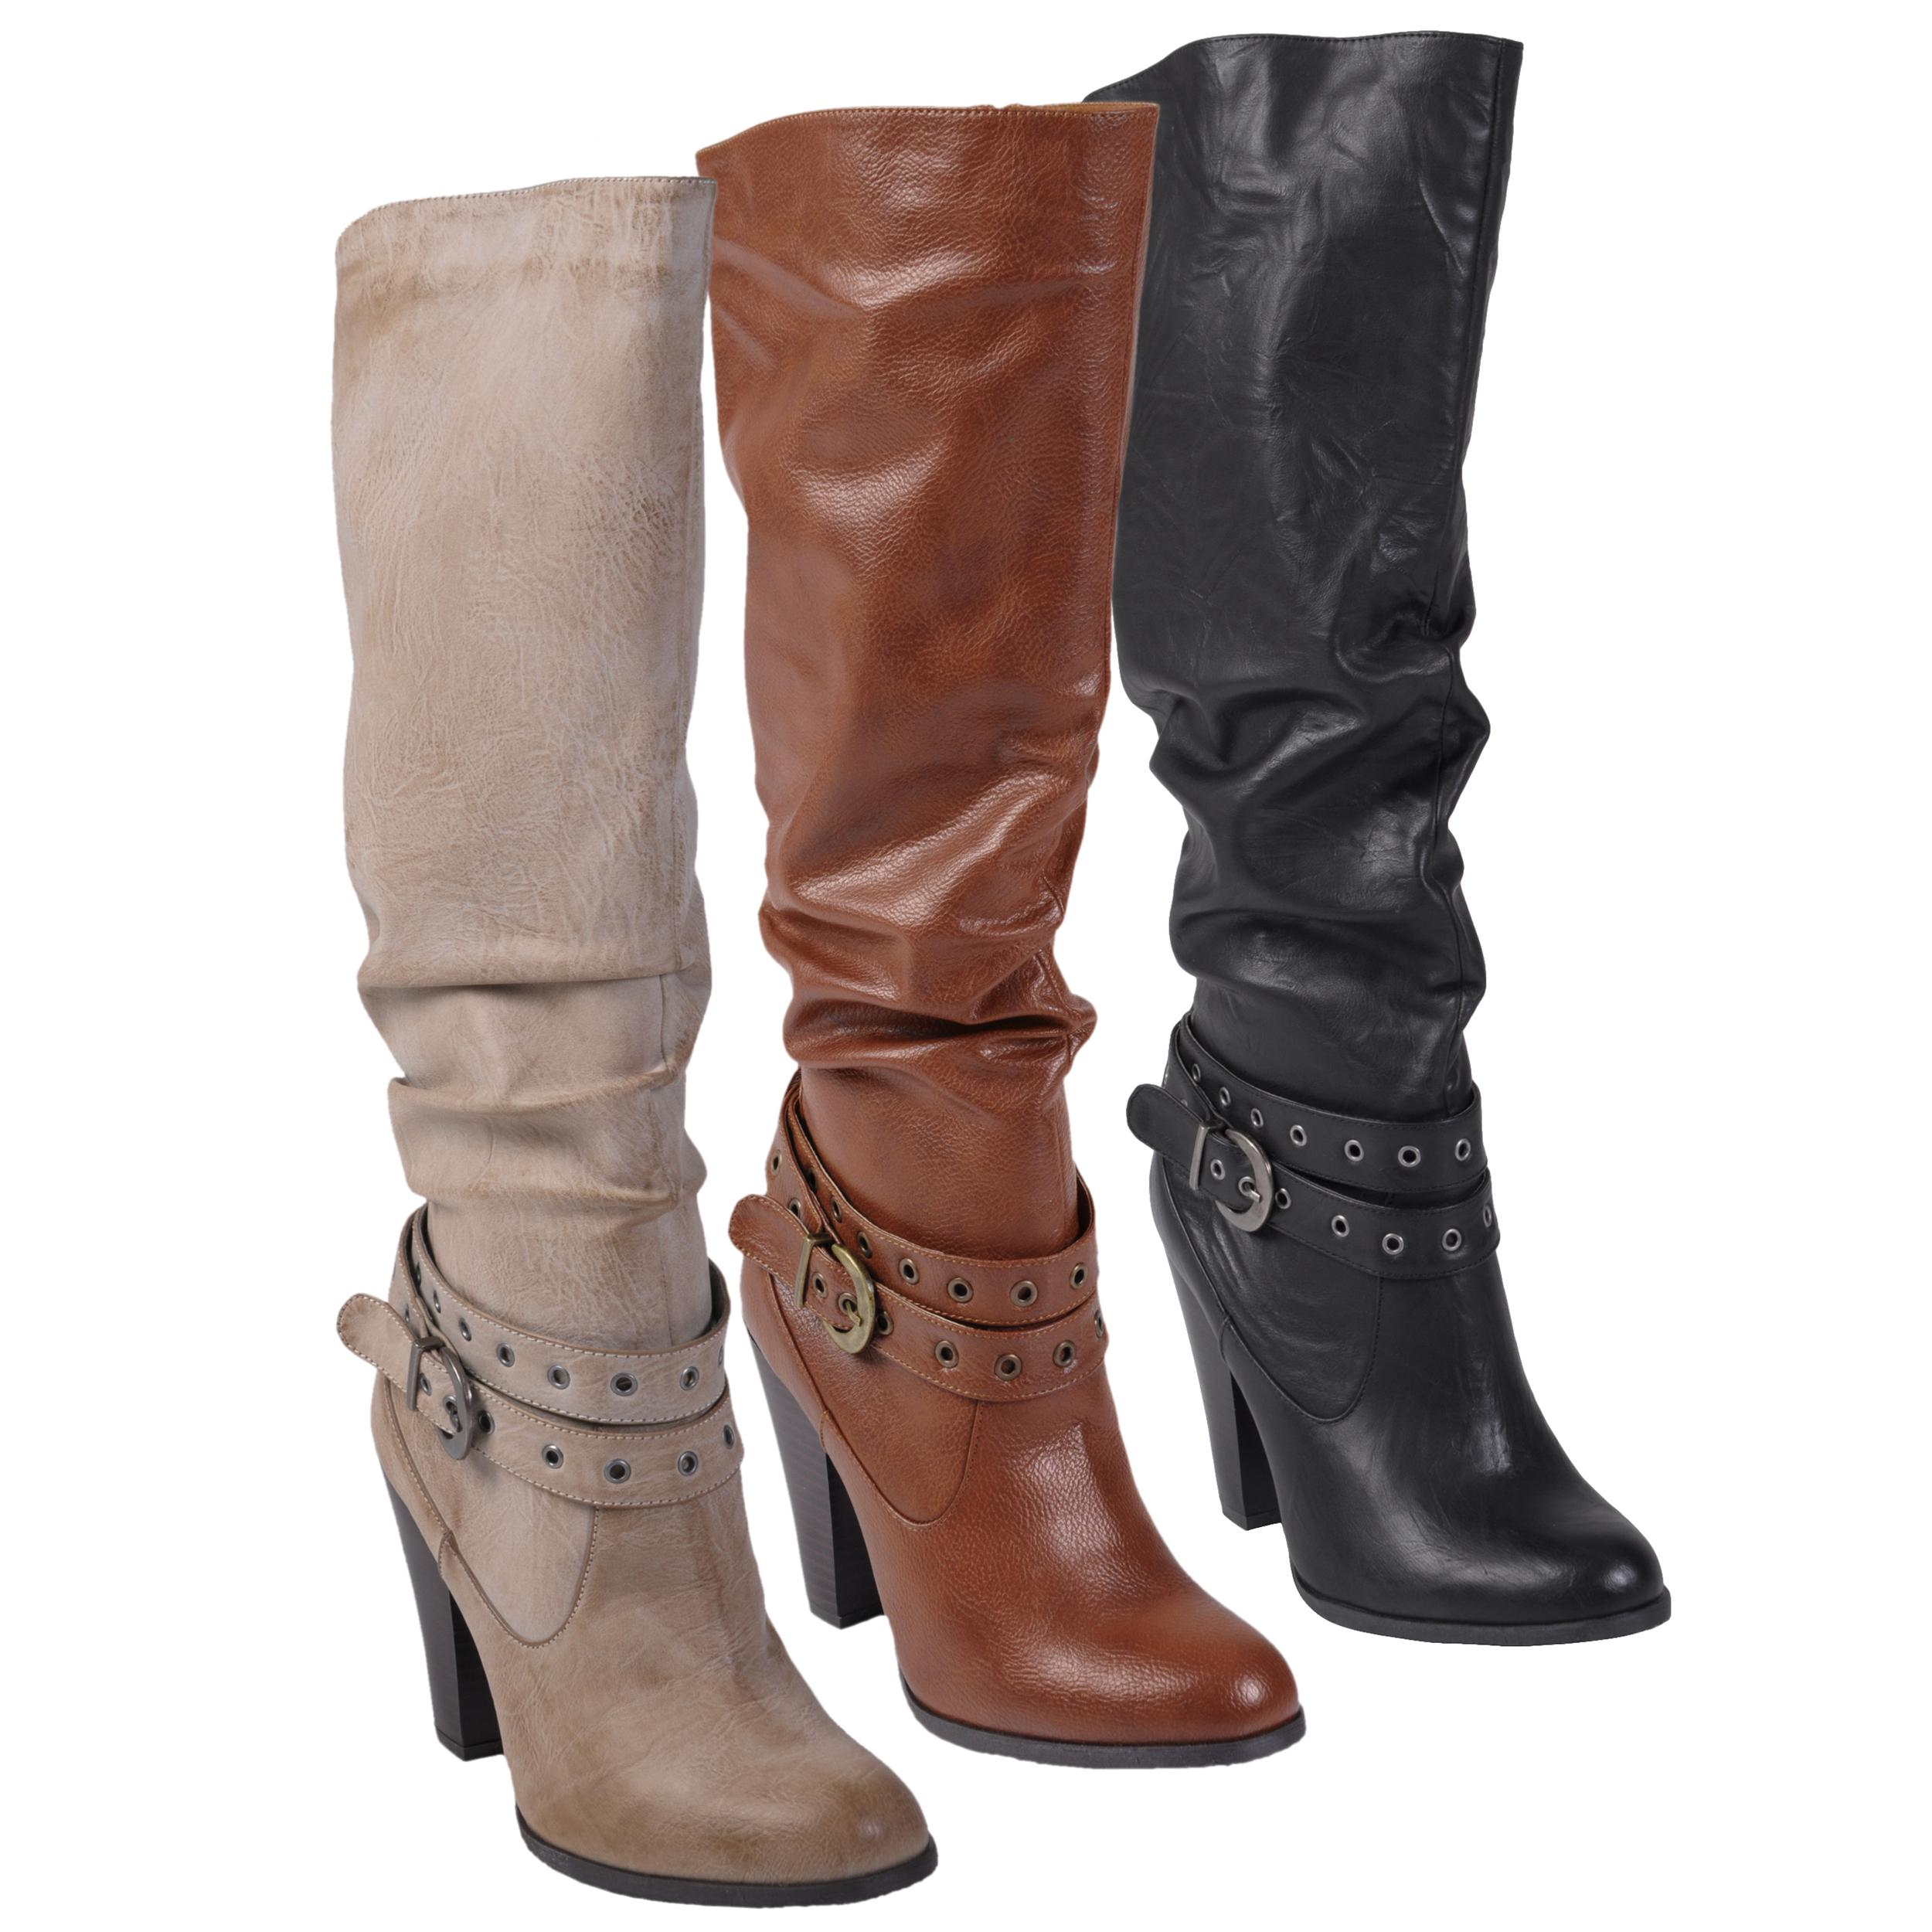 bd172787b19ff Shop Journee Collection Women's 'ALADDIN-51' Buckle Accent High Heel Boot - Free  Shipping Today - Overstock - 6153793